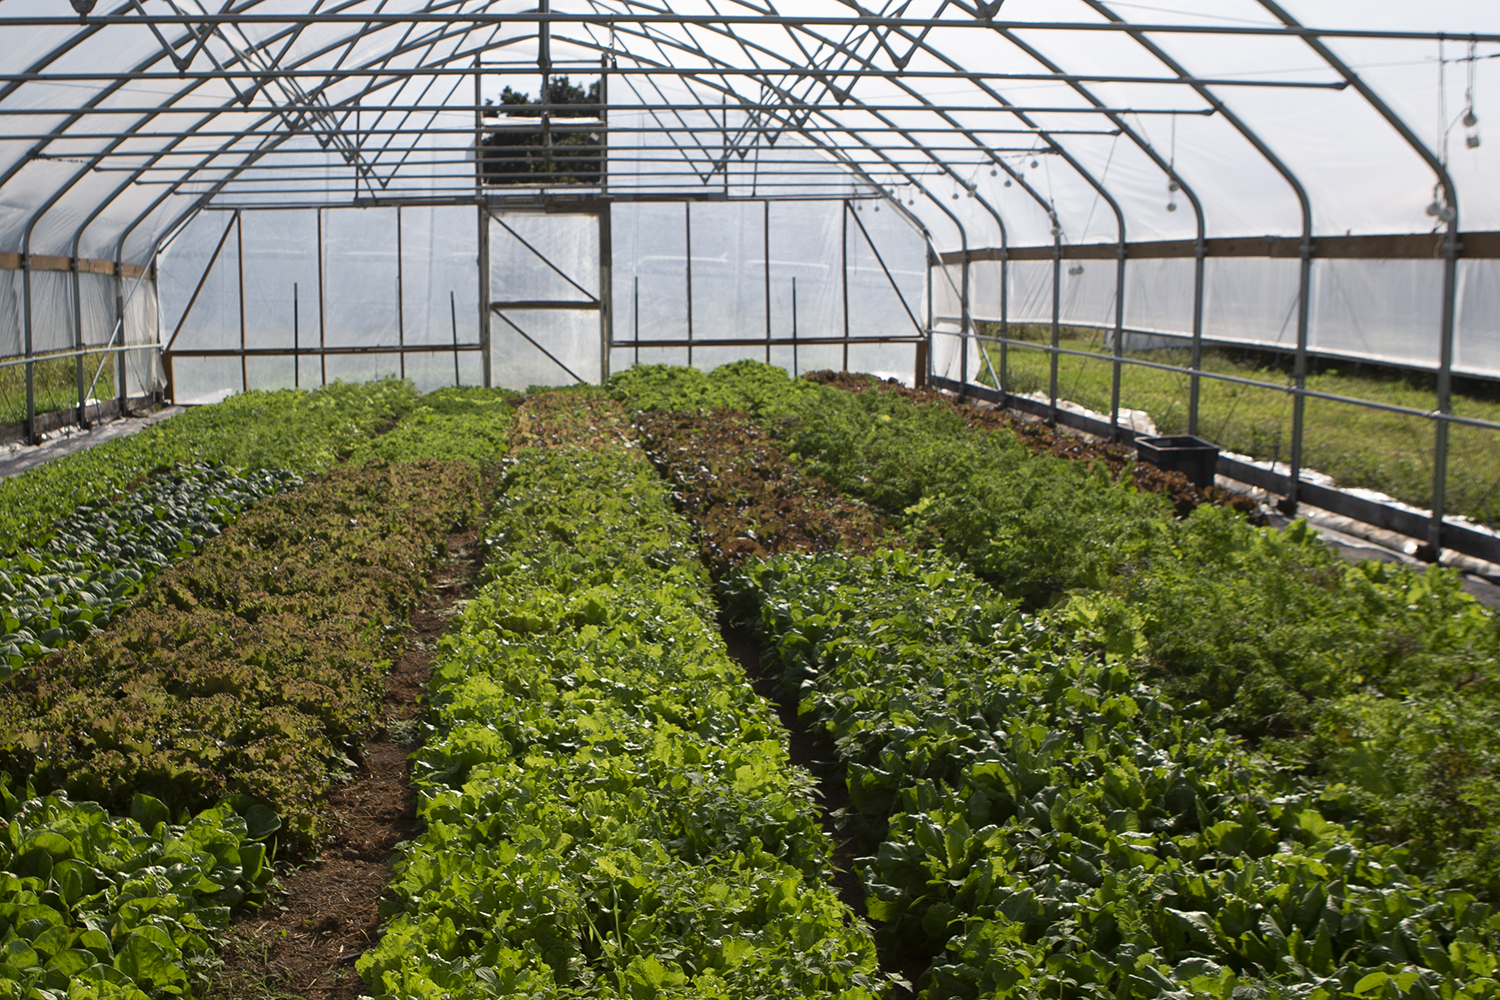 Plants in a greenhouse are seen at Sundog Farm & Local Harvest CSA on Tuesday, Sept. 24, 2019.